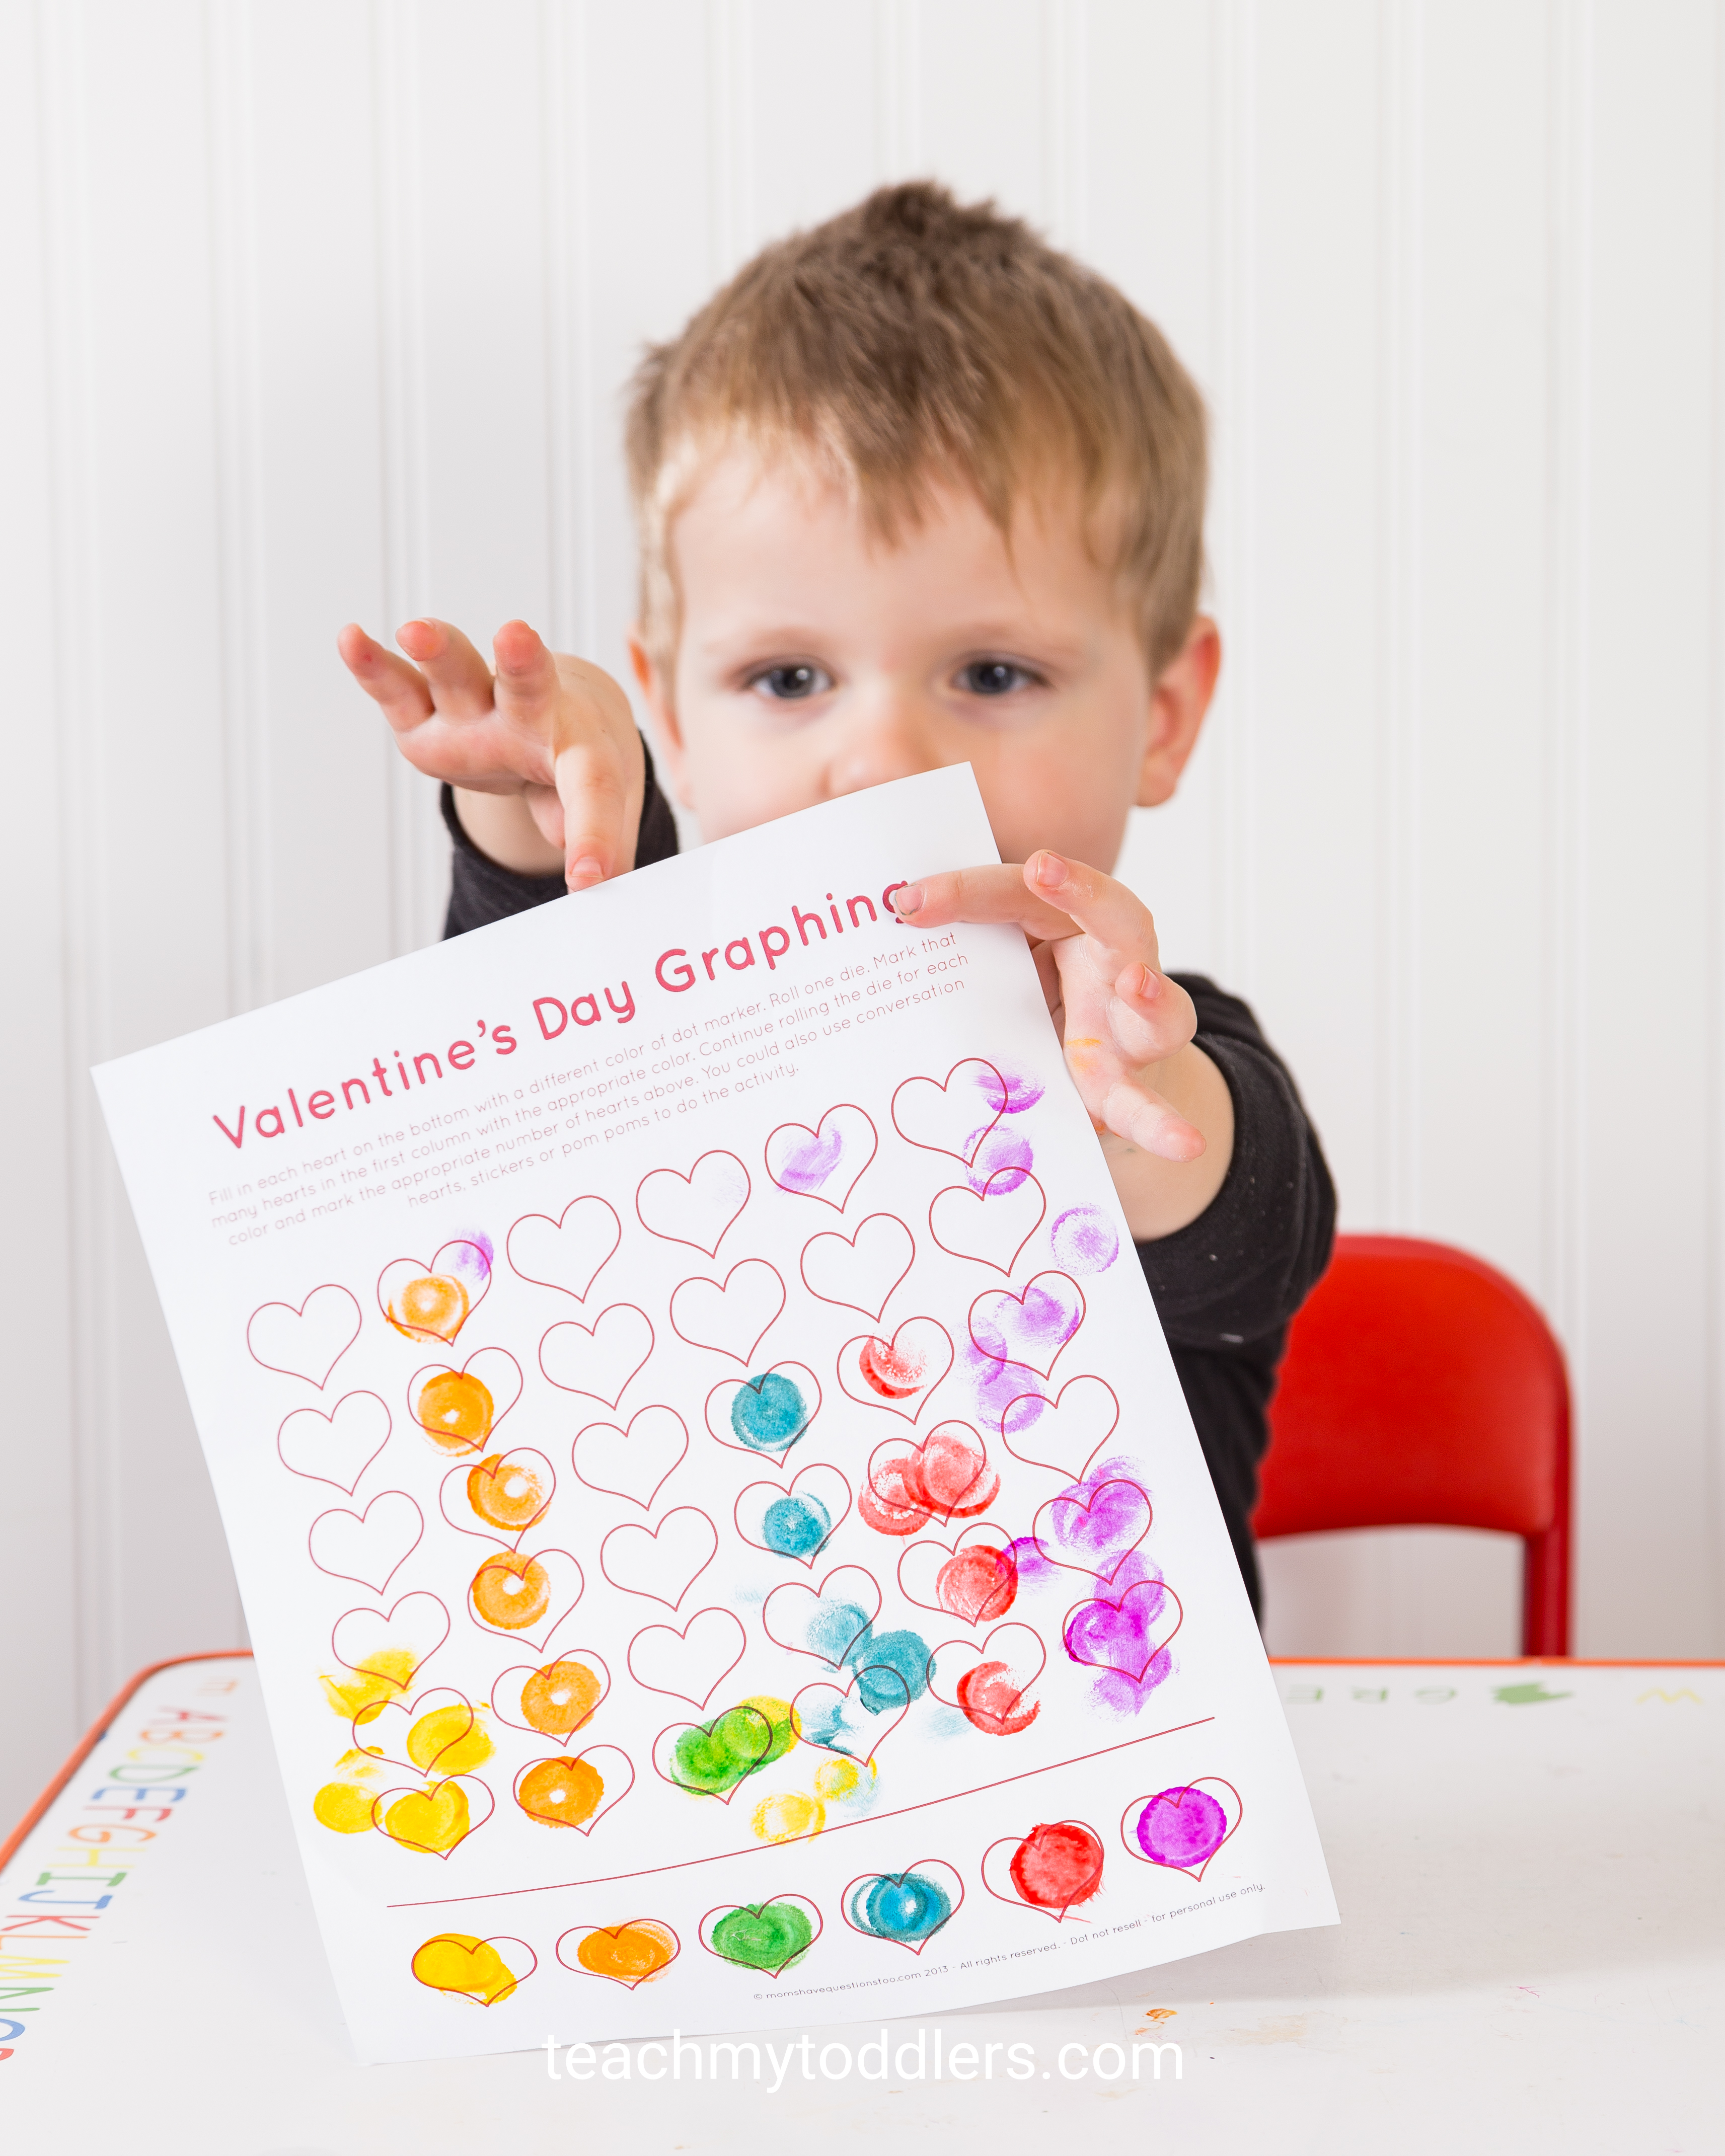 Valentine S Day Graphing Printable Teach My Toddlers